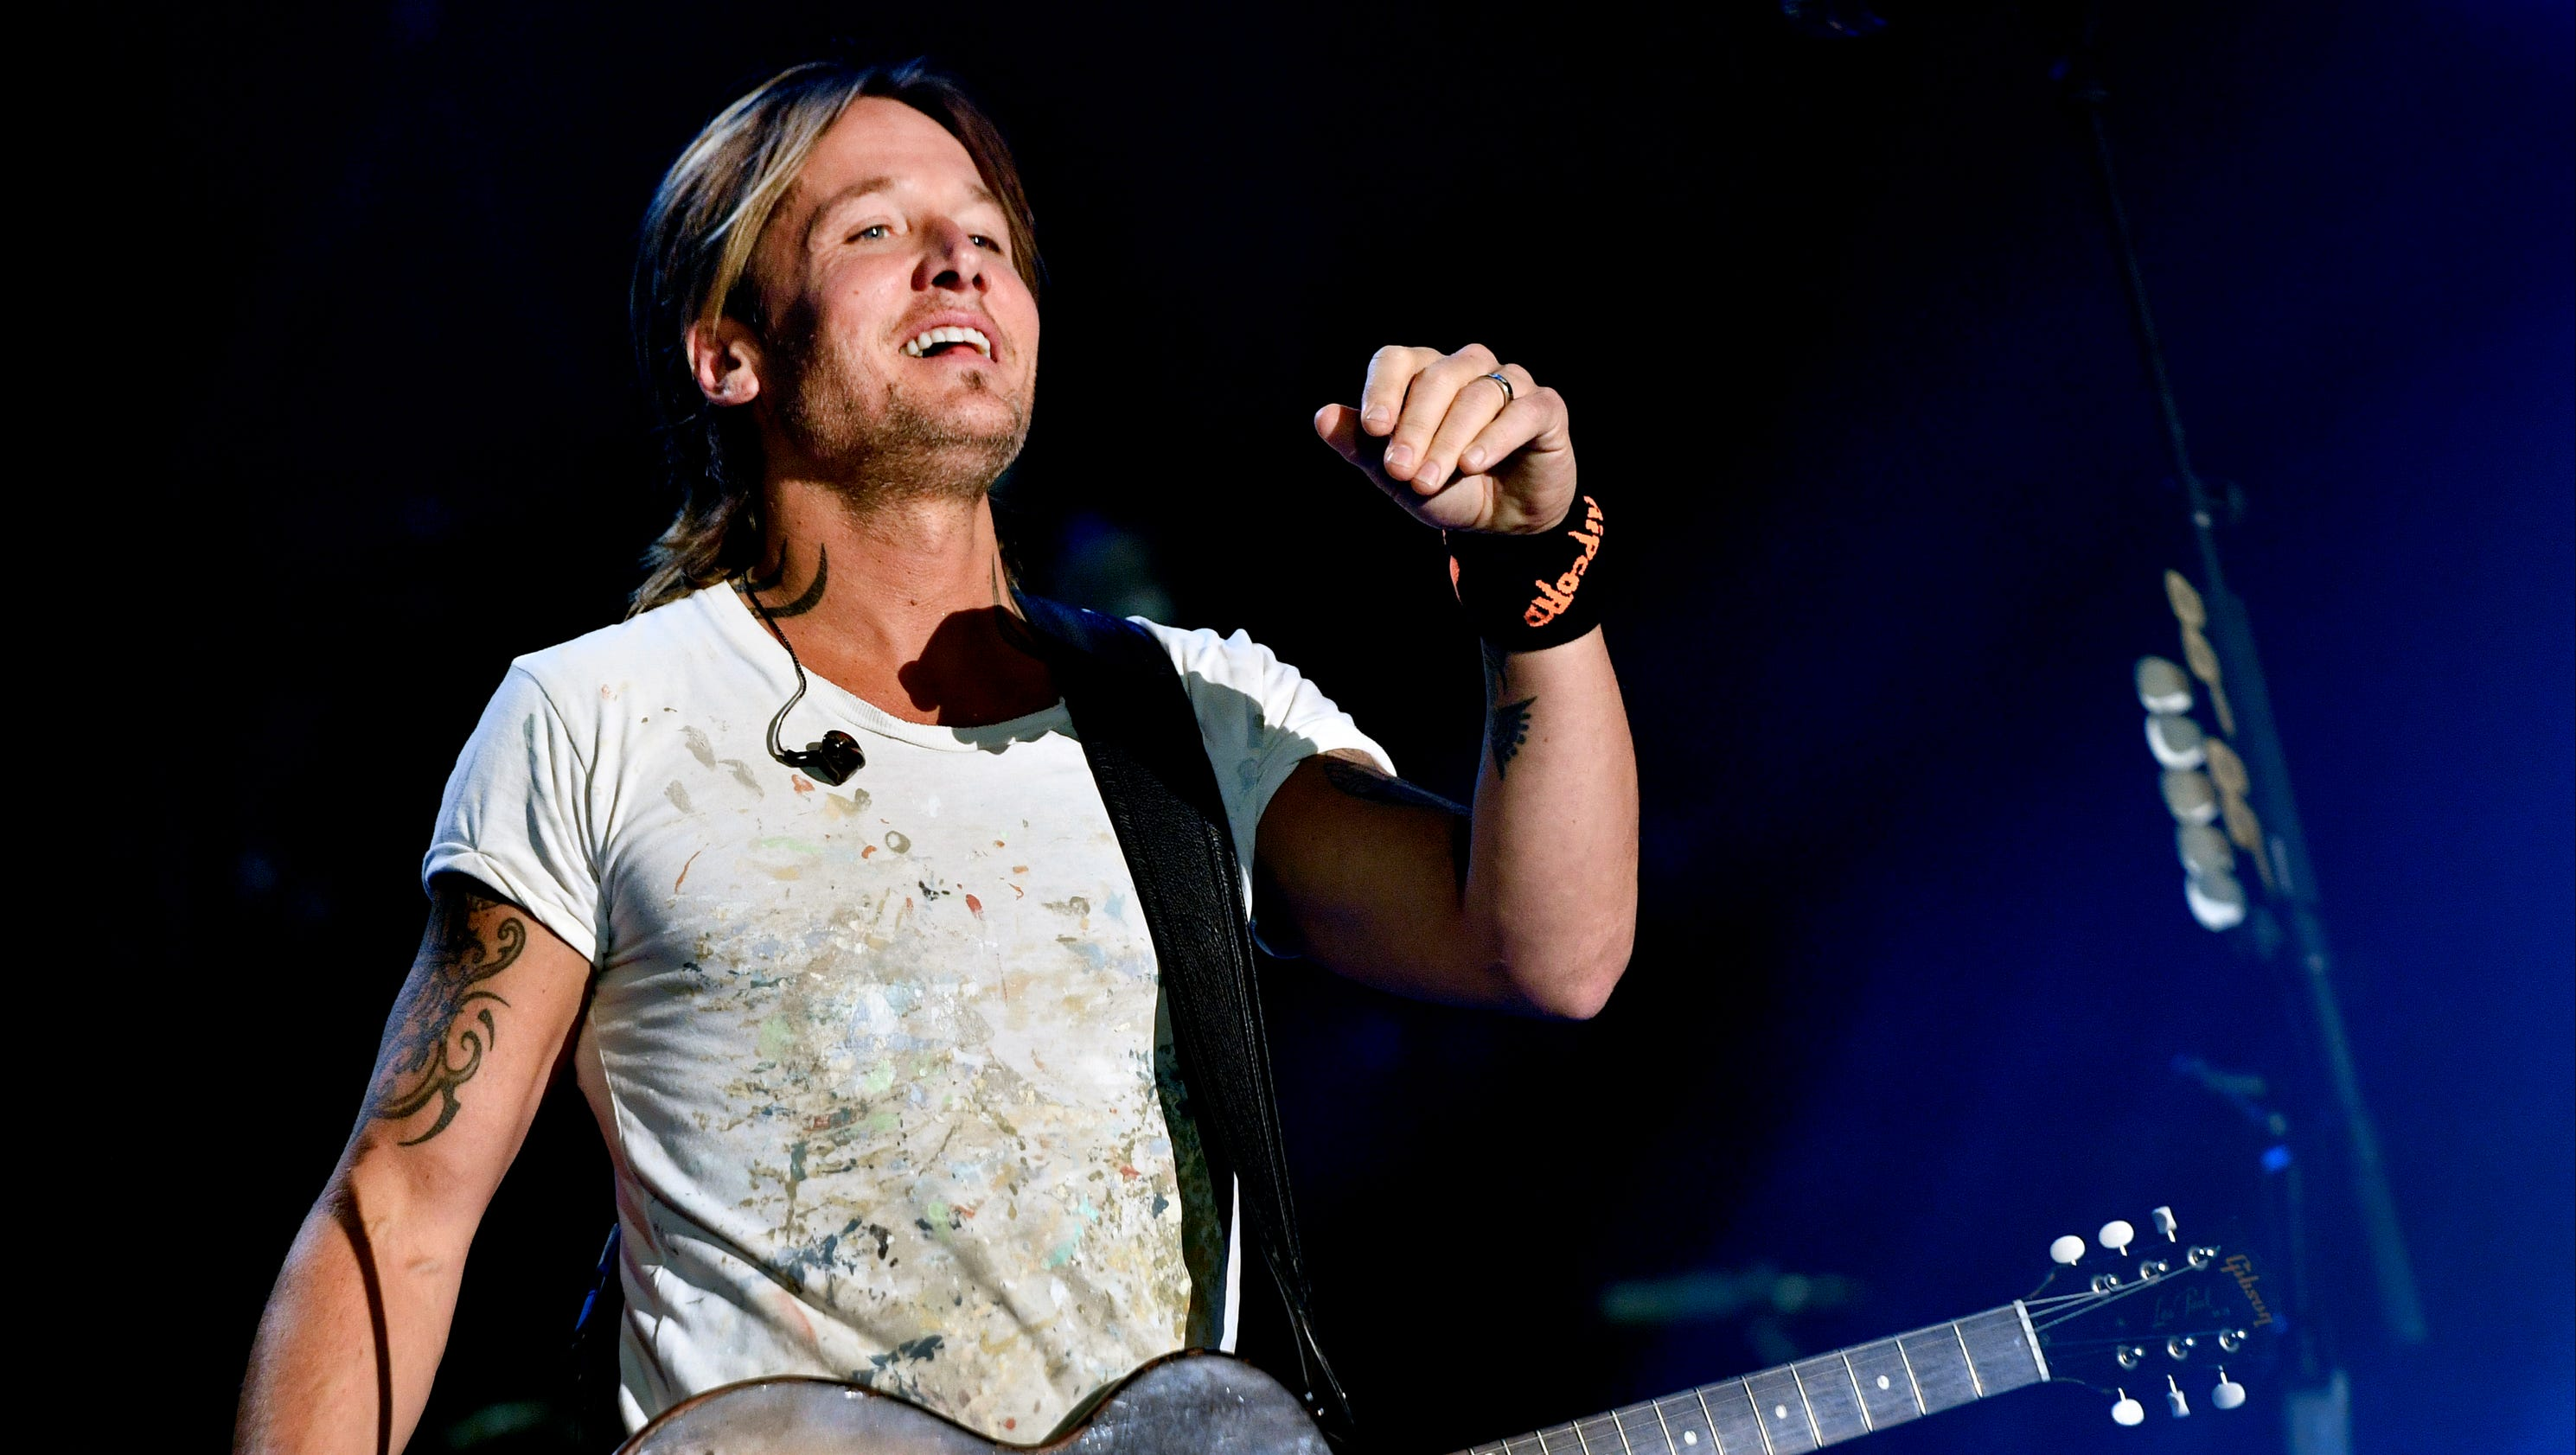 Keith Urban Hops Off Stage Performs From Audience At Cma Fest